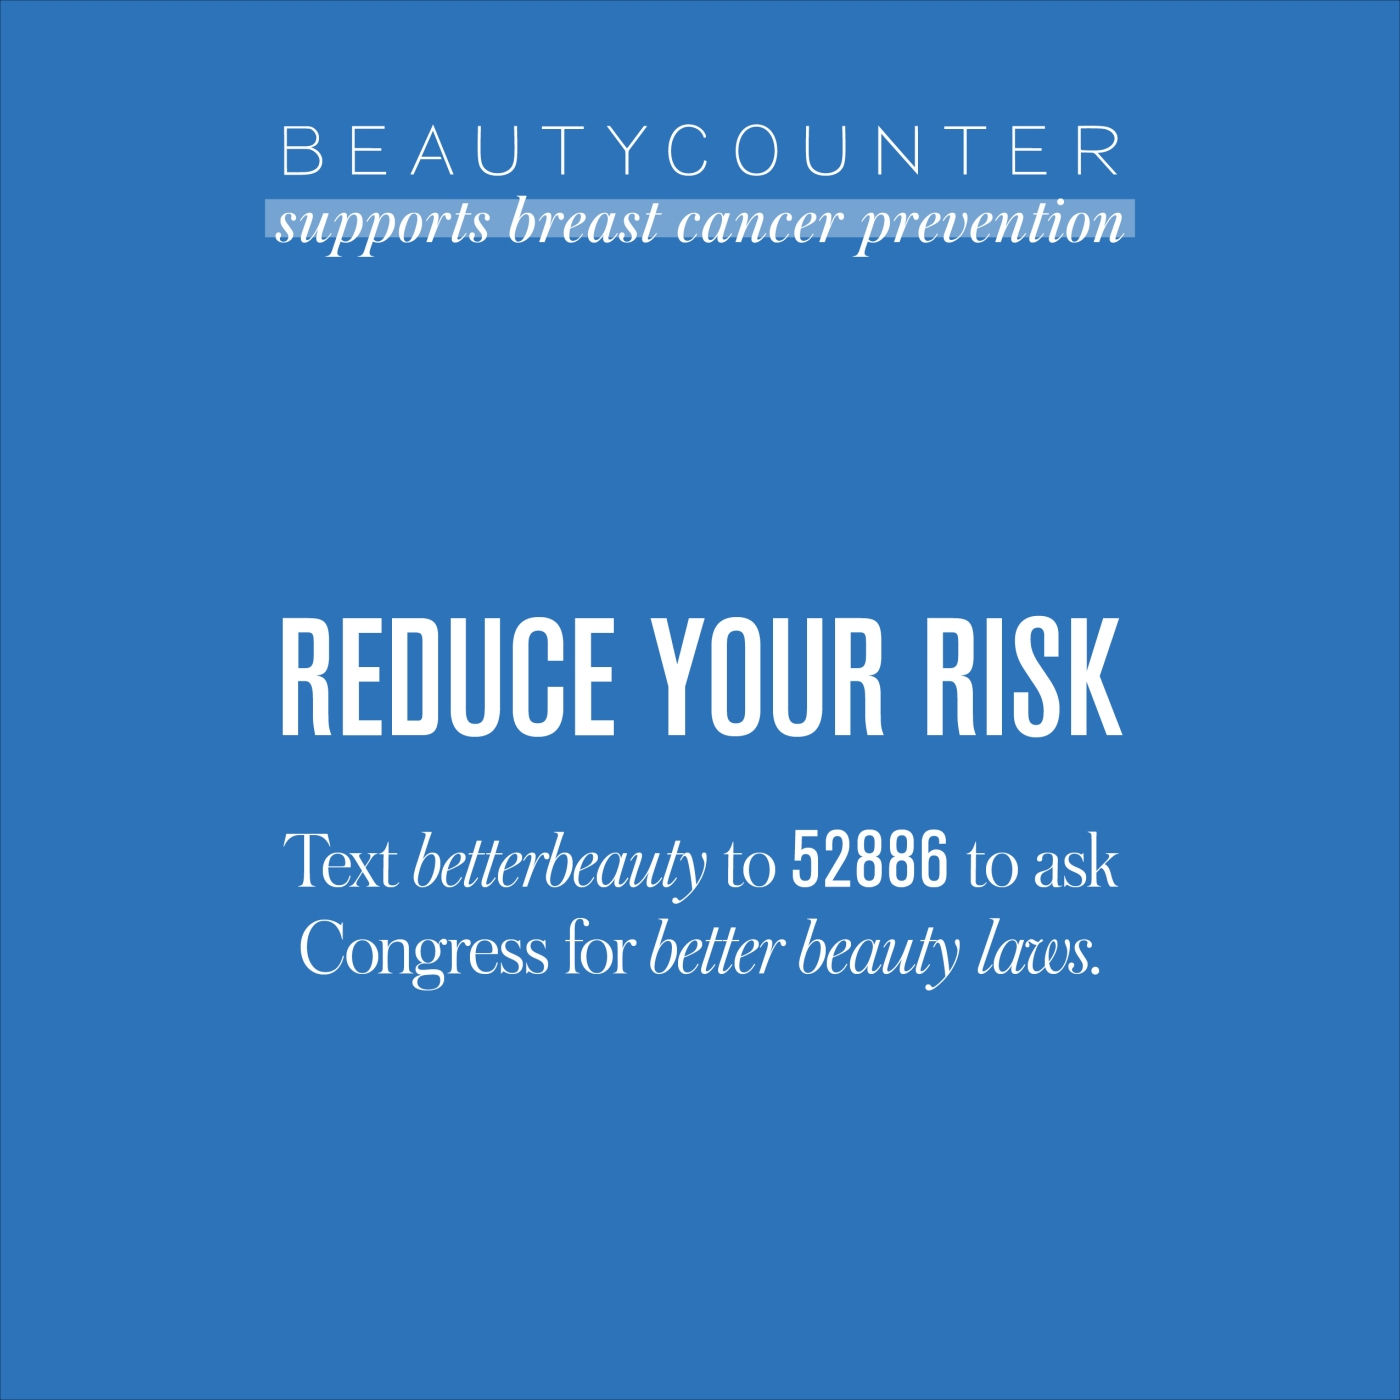 Better Beauty Vermont Reduce your risk, text 52886 to ask congress for better beauty laws